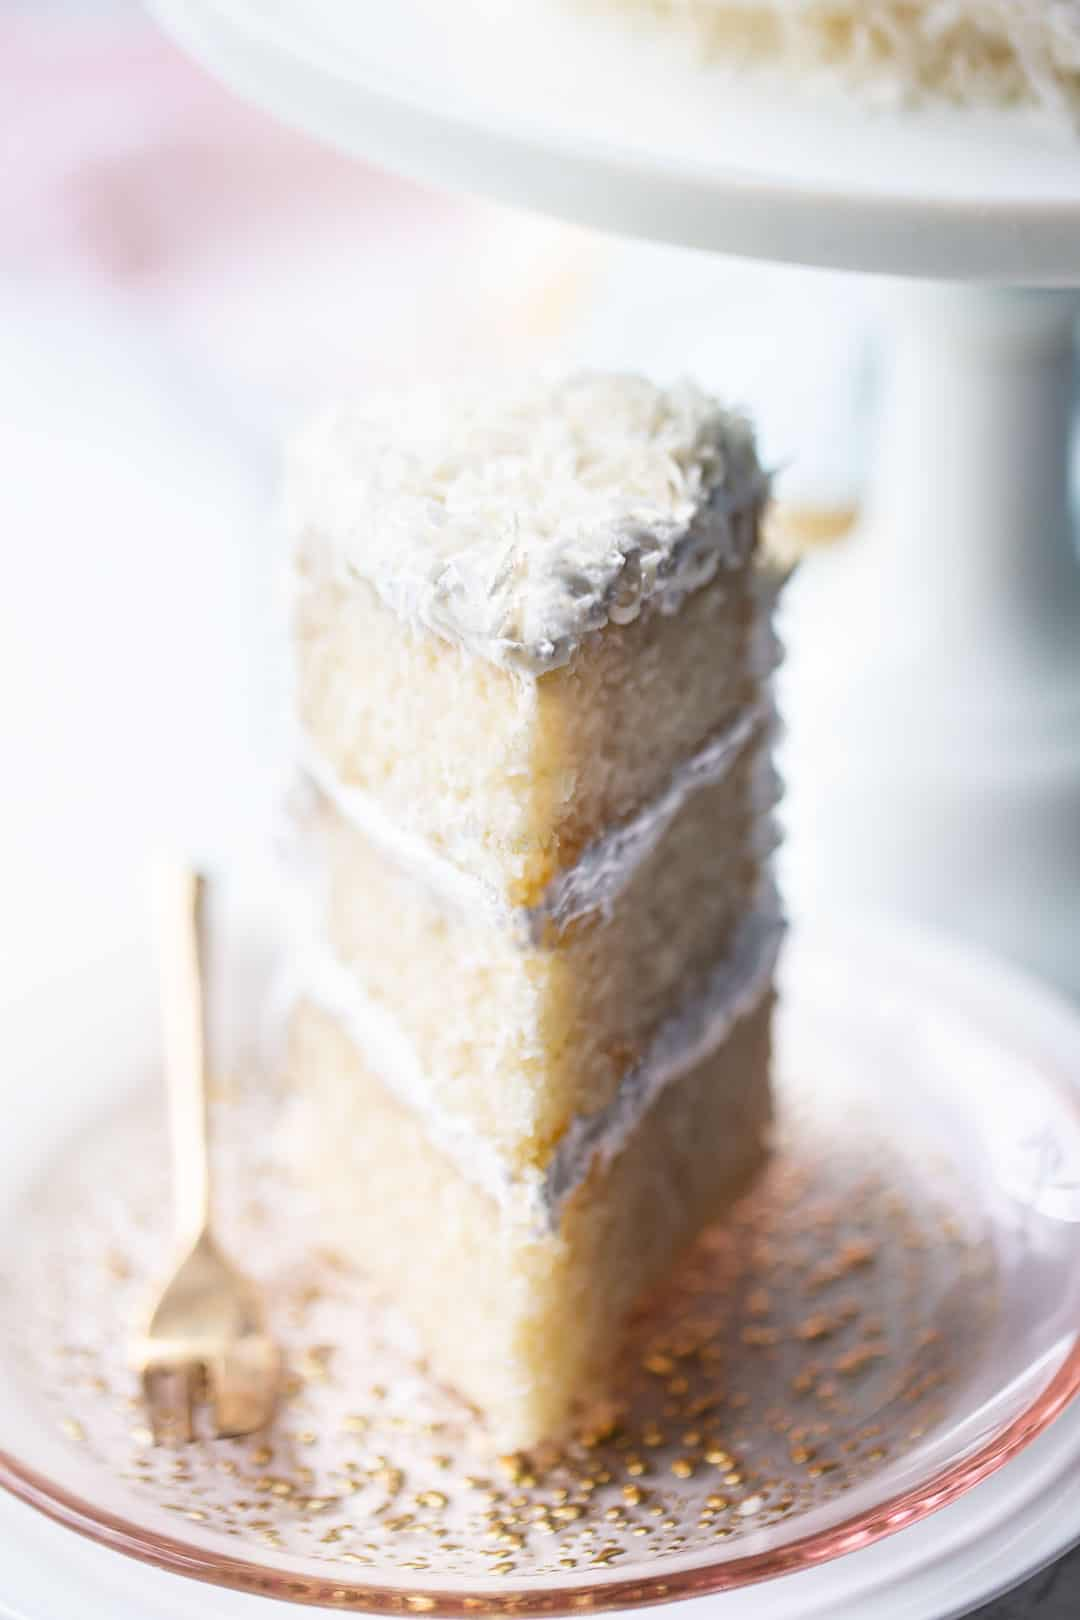 Tall wedge of coconut cream cake, served on a pink glass plate with a white pedestal in the background.